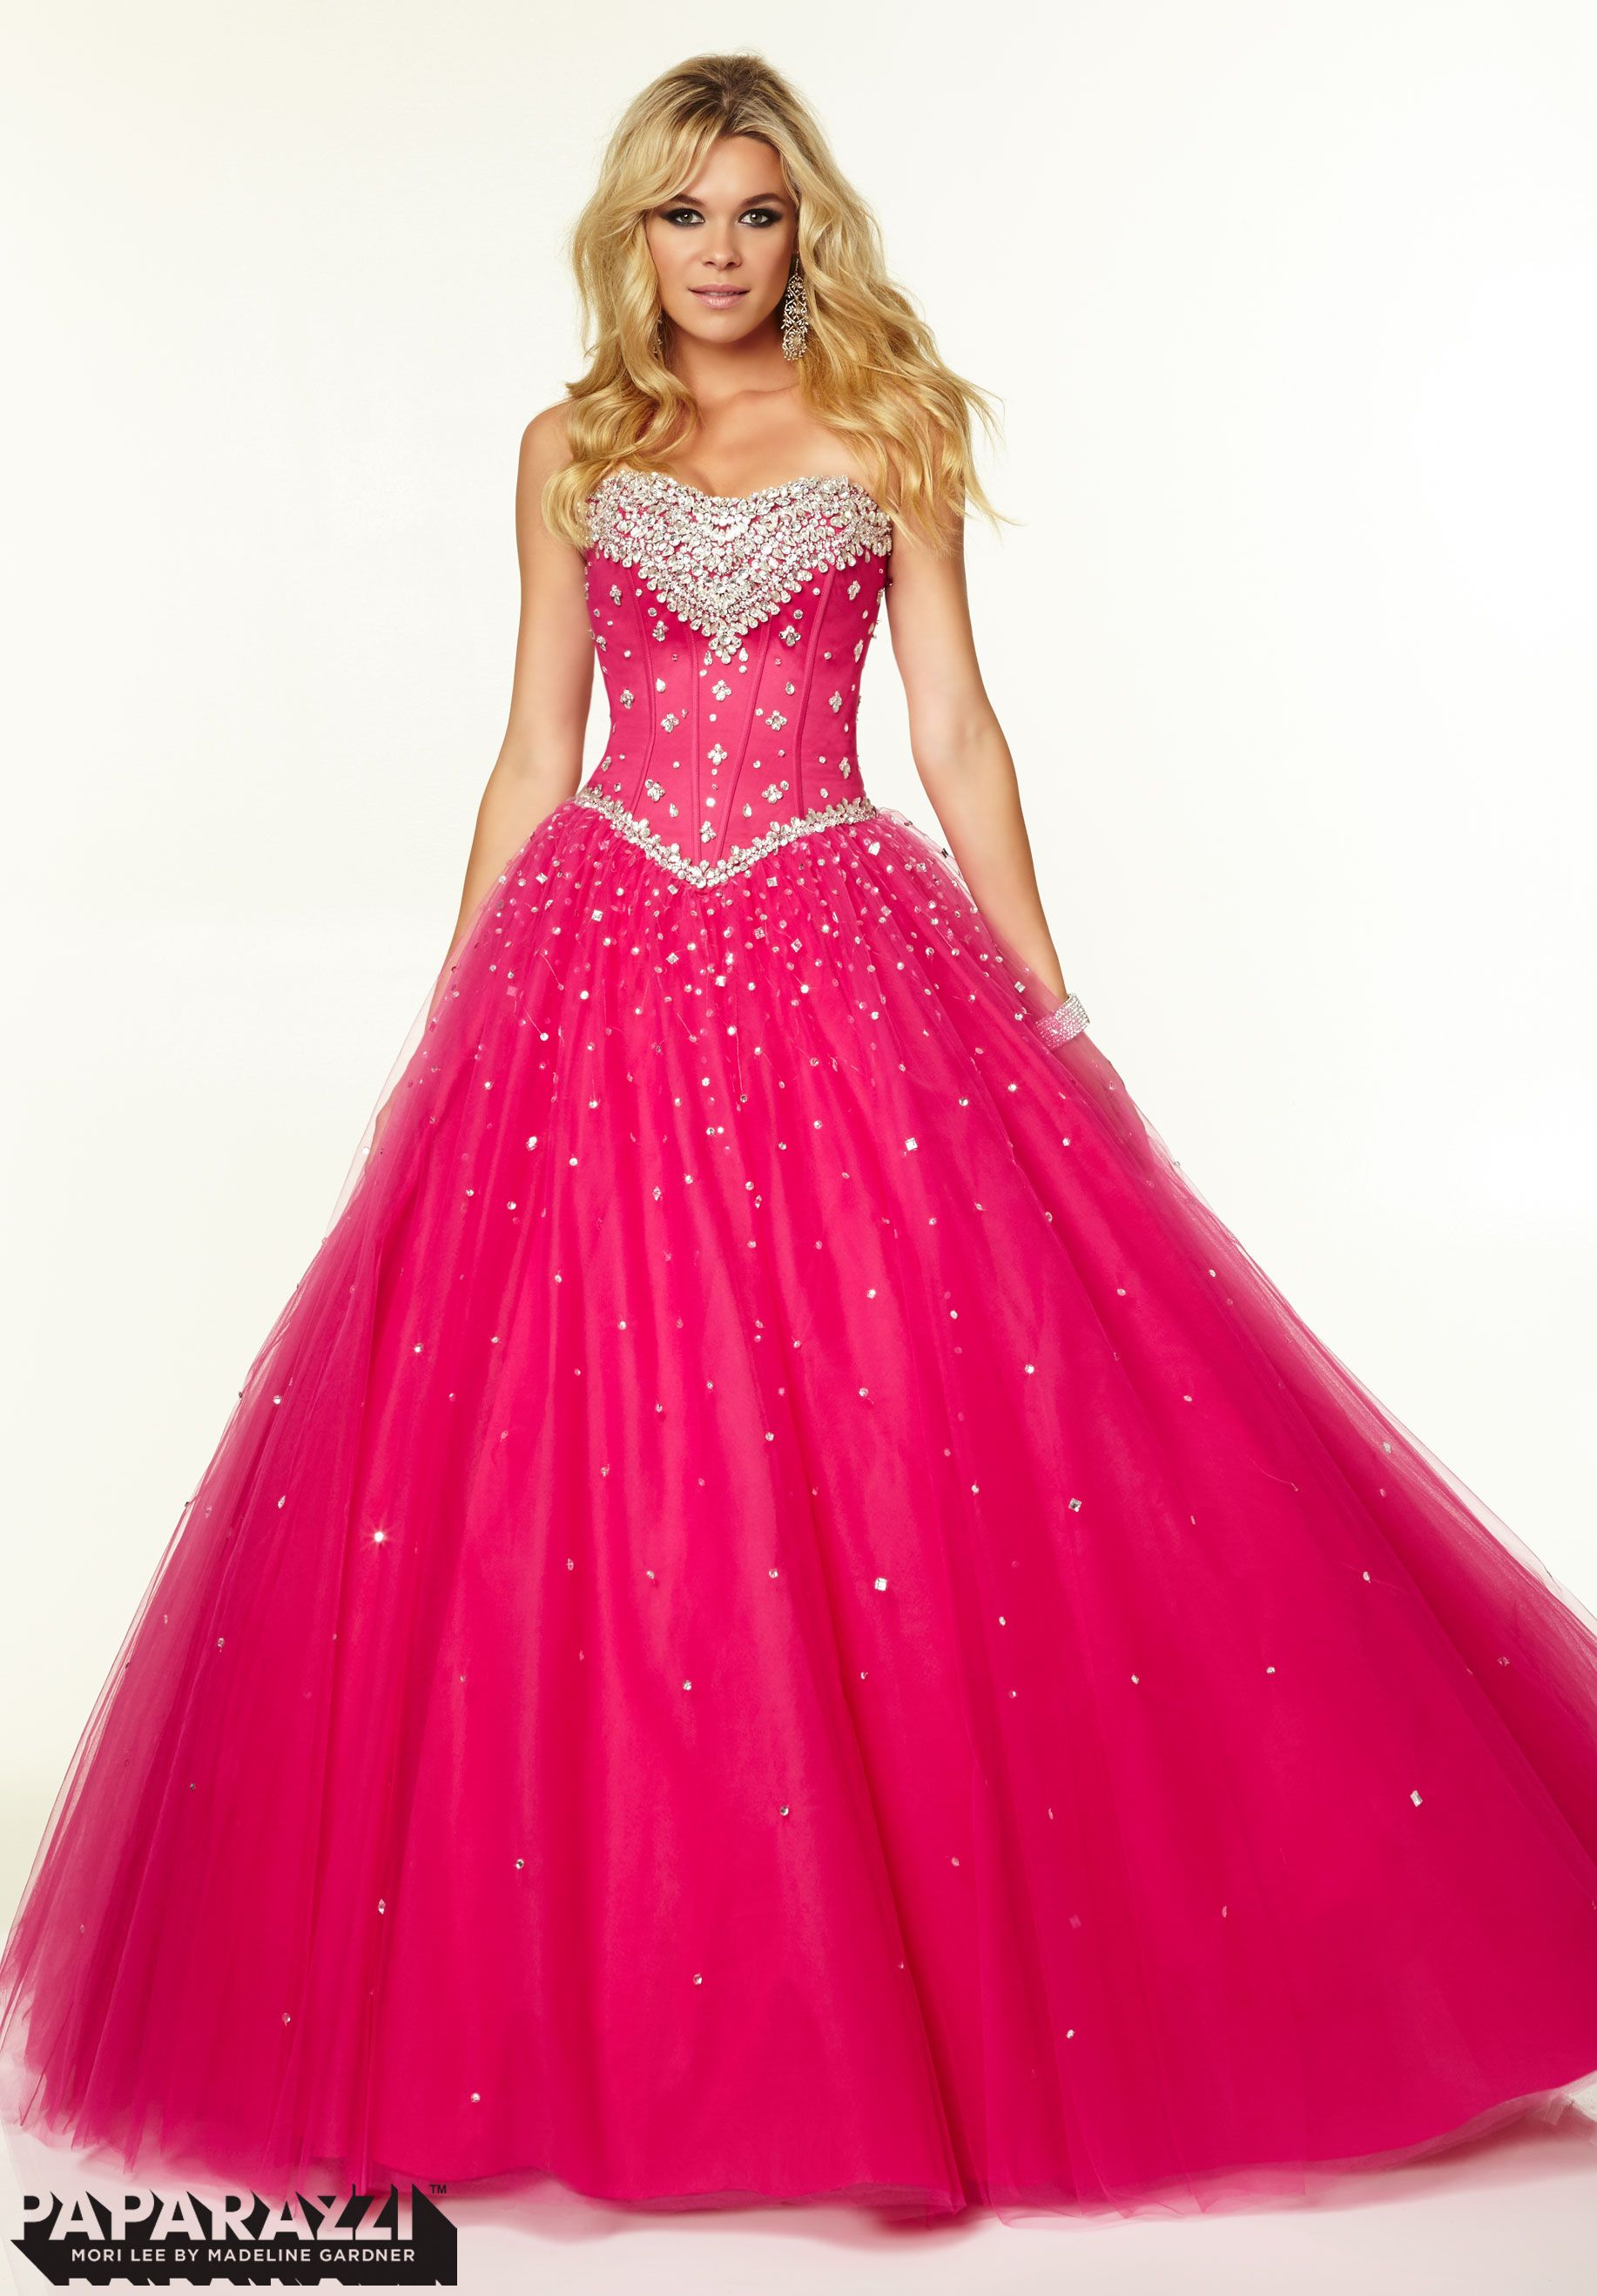 Prom Dresses / Gowns Style 97002: Crystal Beading on Tulle Ballgown ...